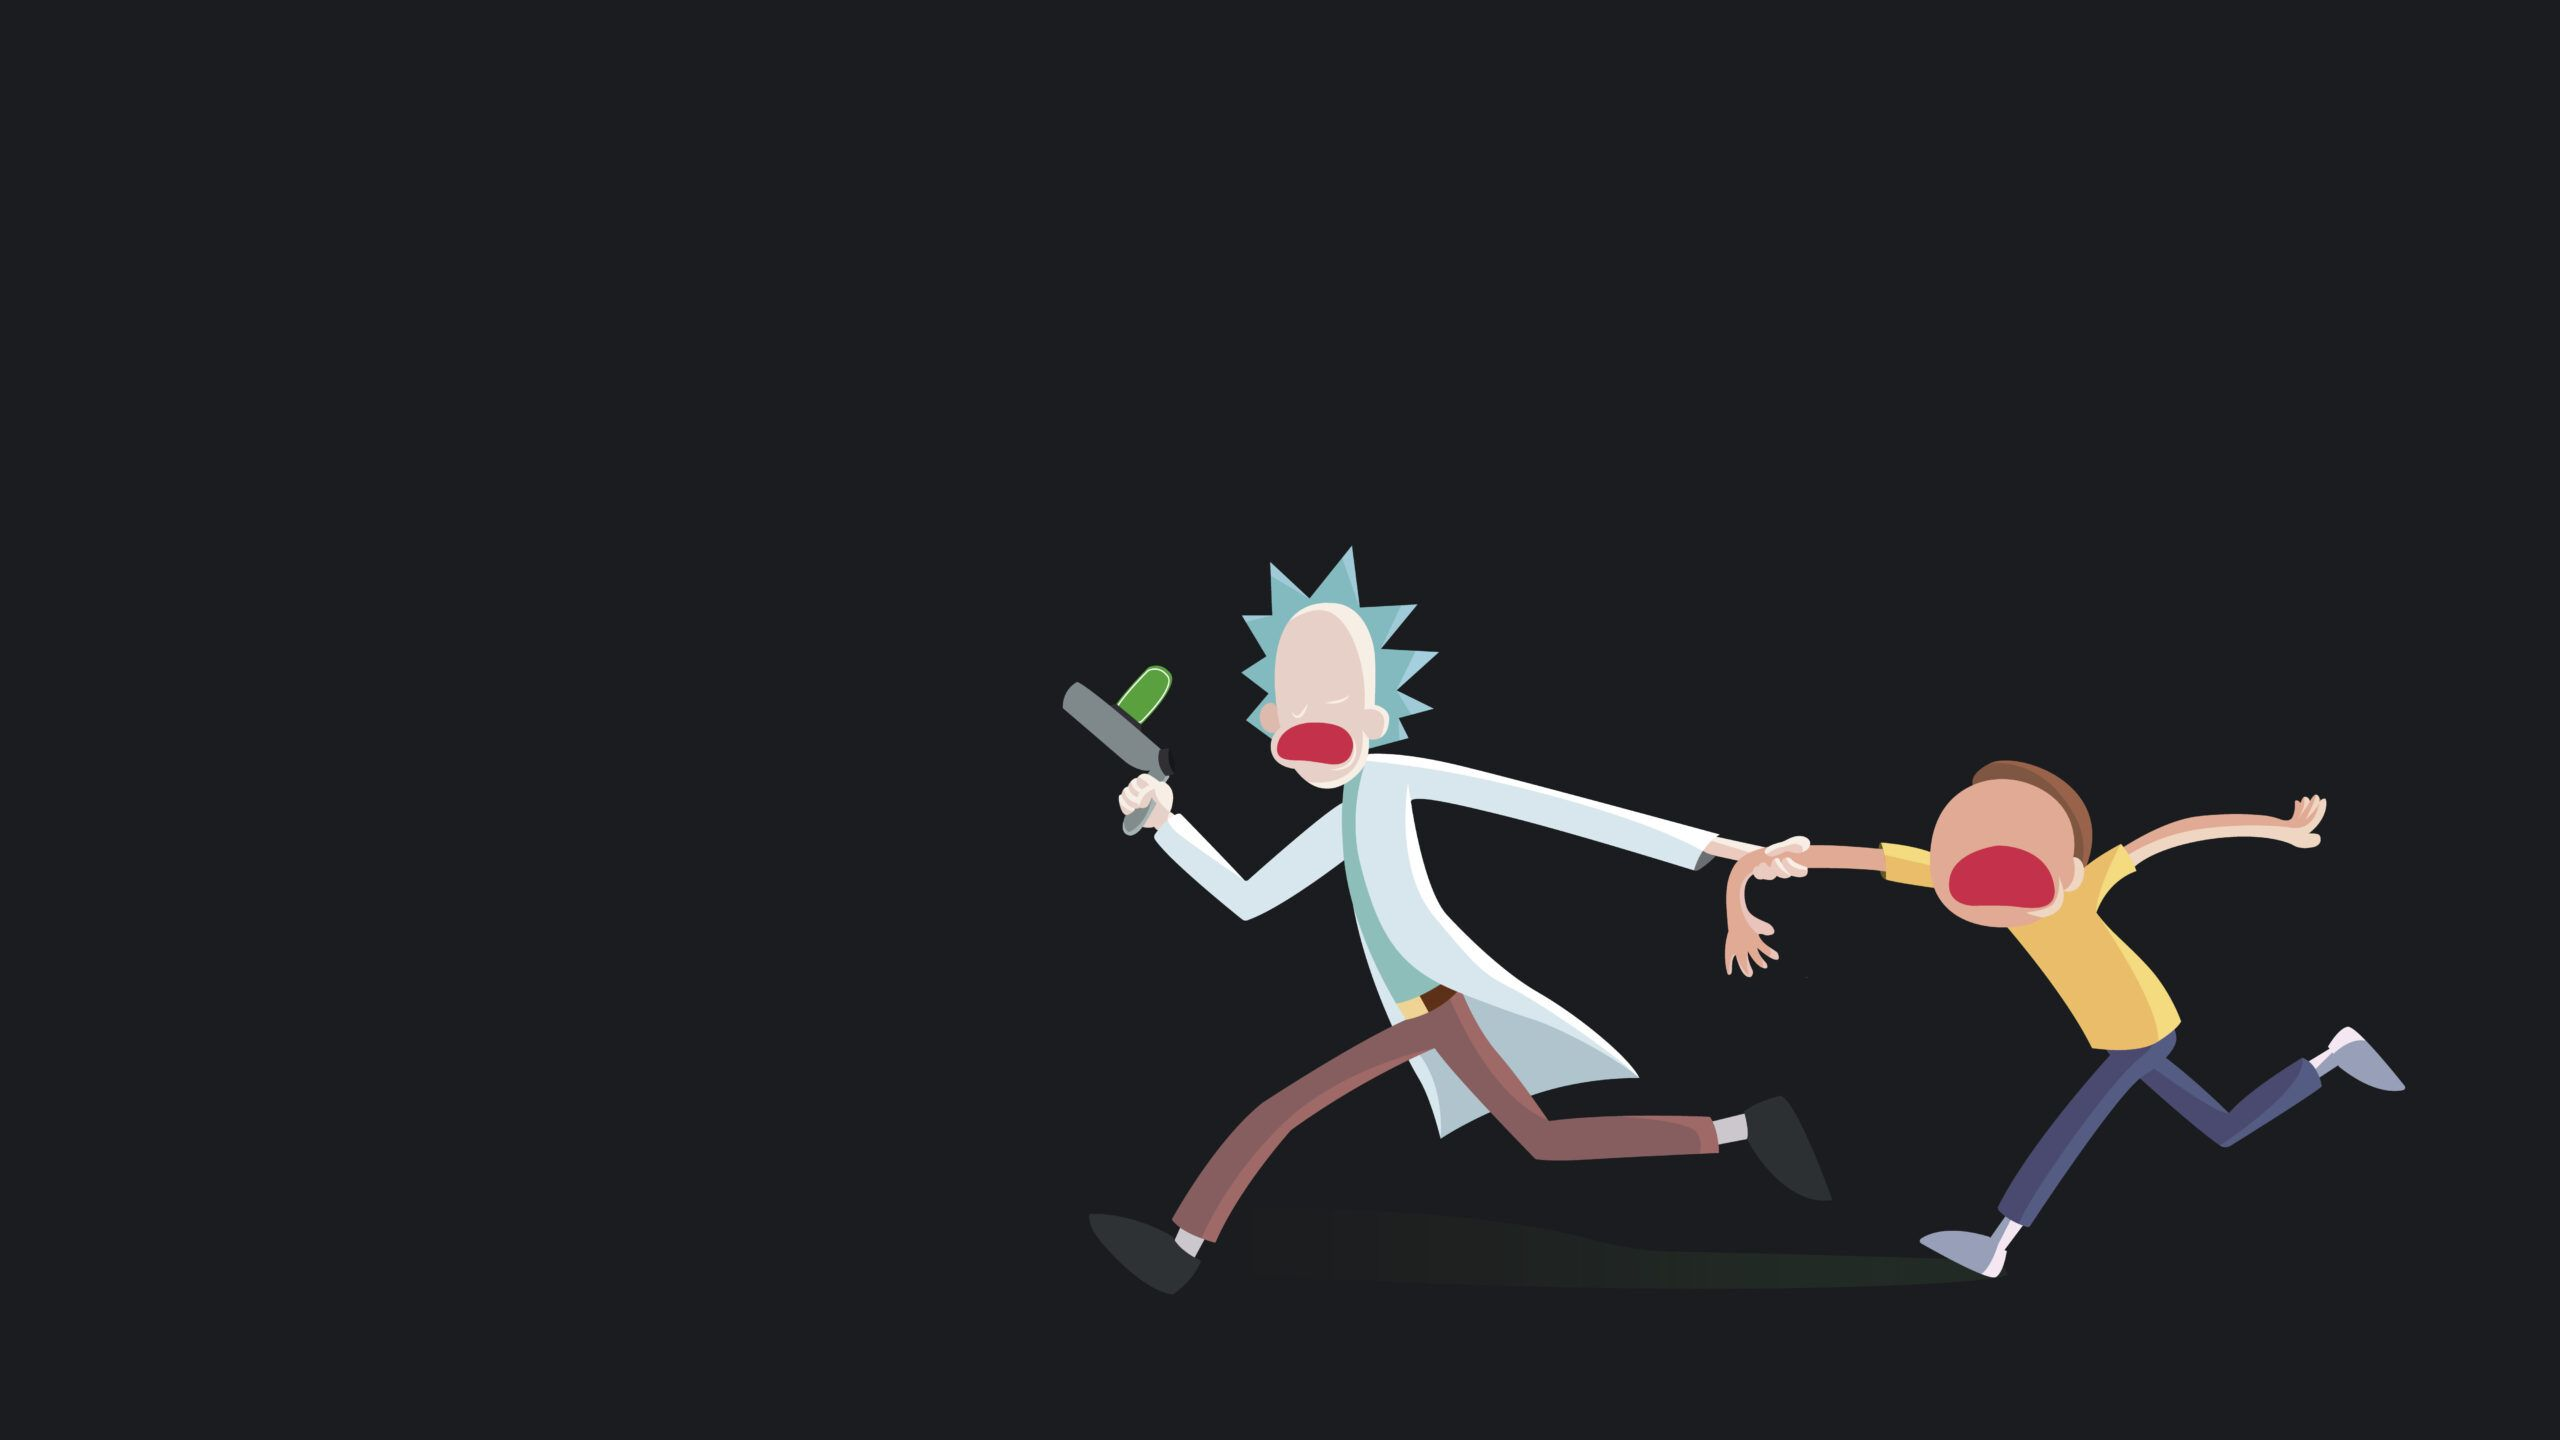 Coolest Pc Minimalist Rick And Morty Wallpapers Wallpaper Cave